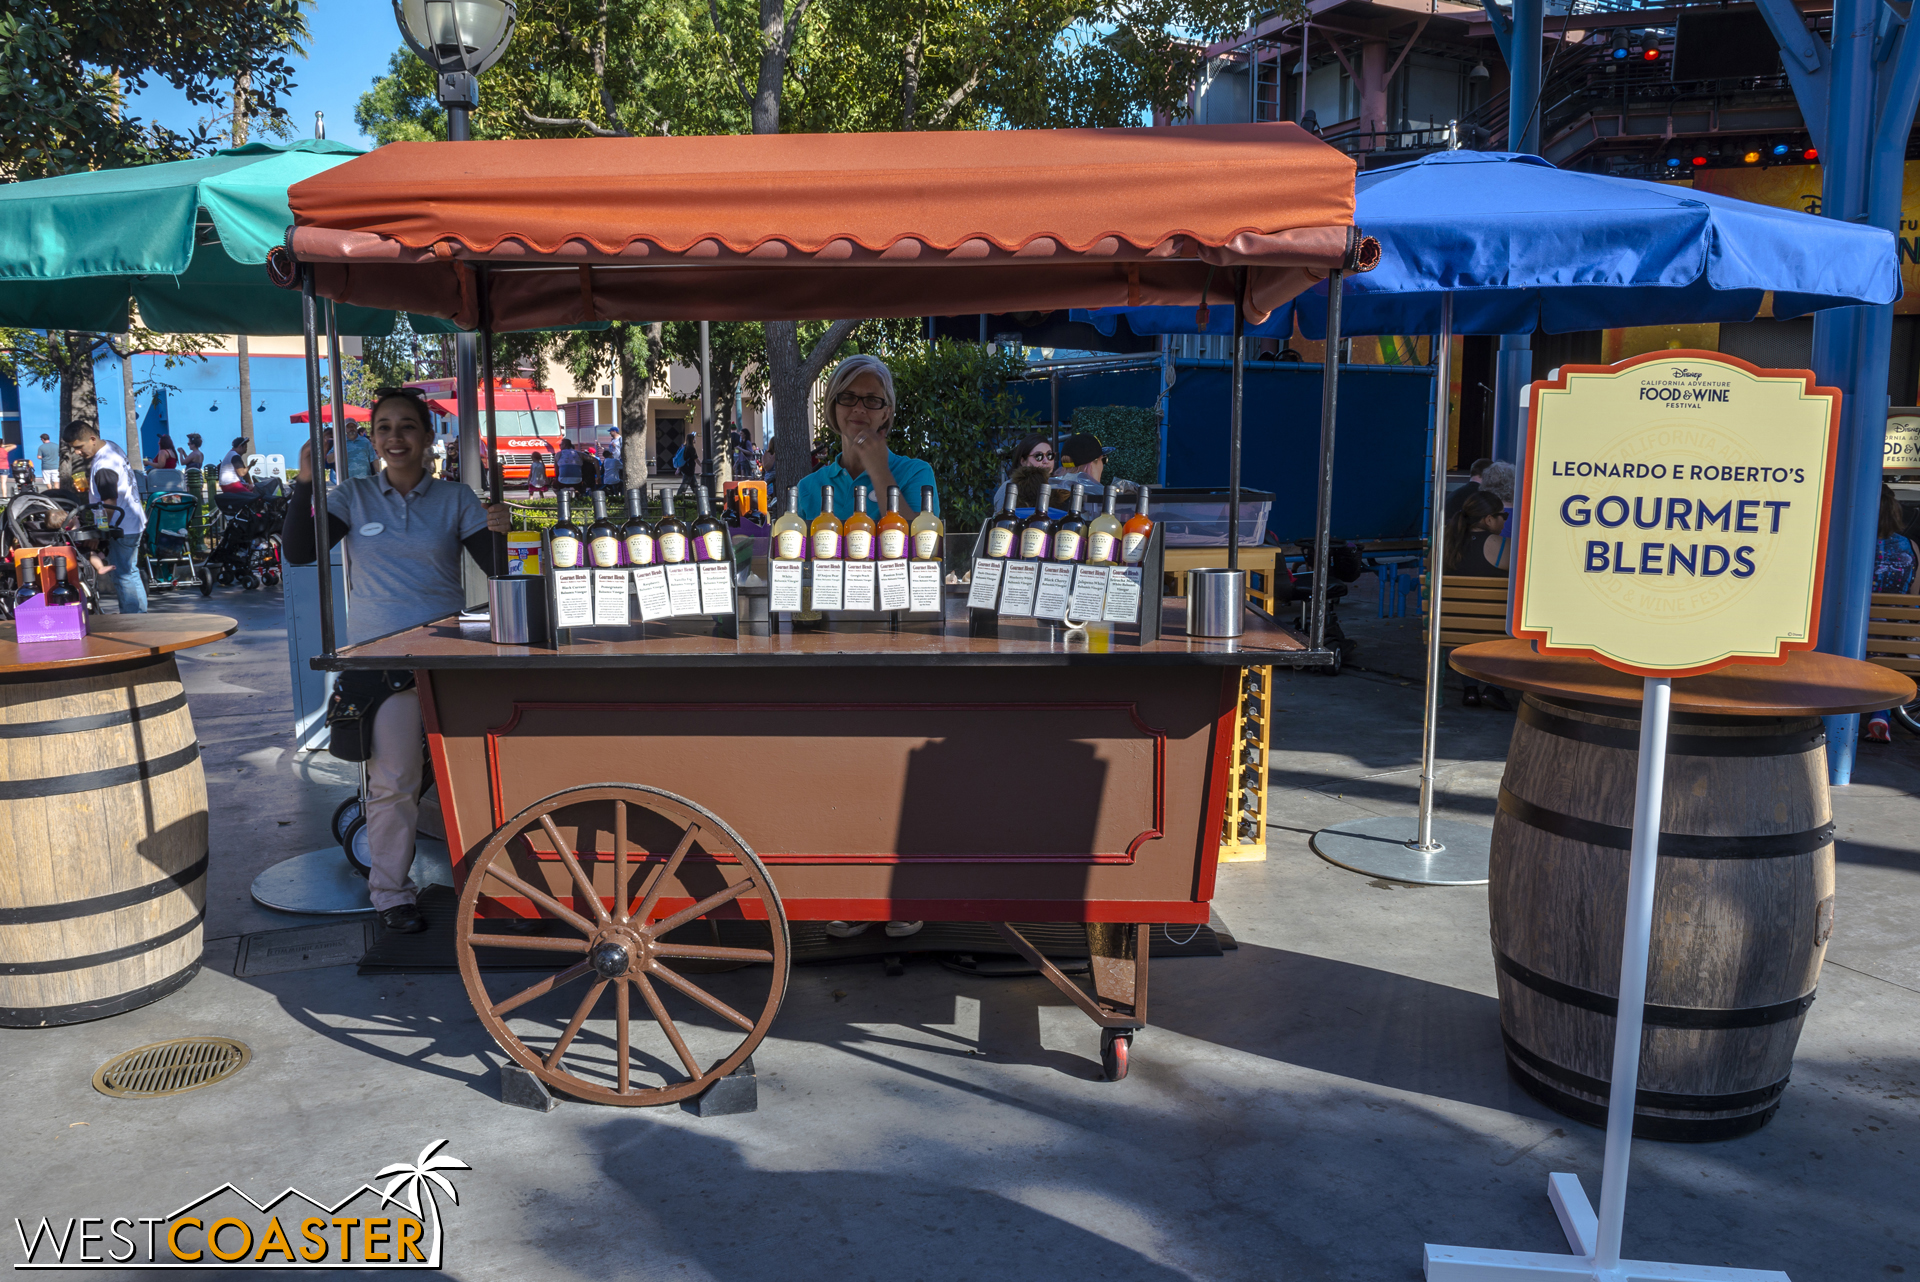 There are vendors in Hollywood Land too, like this balsamic vinegar purveyor.